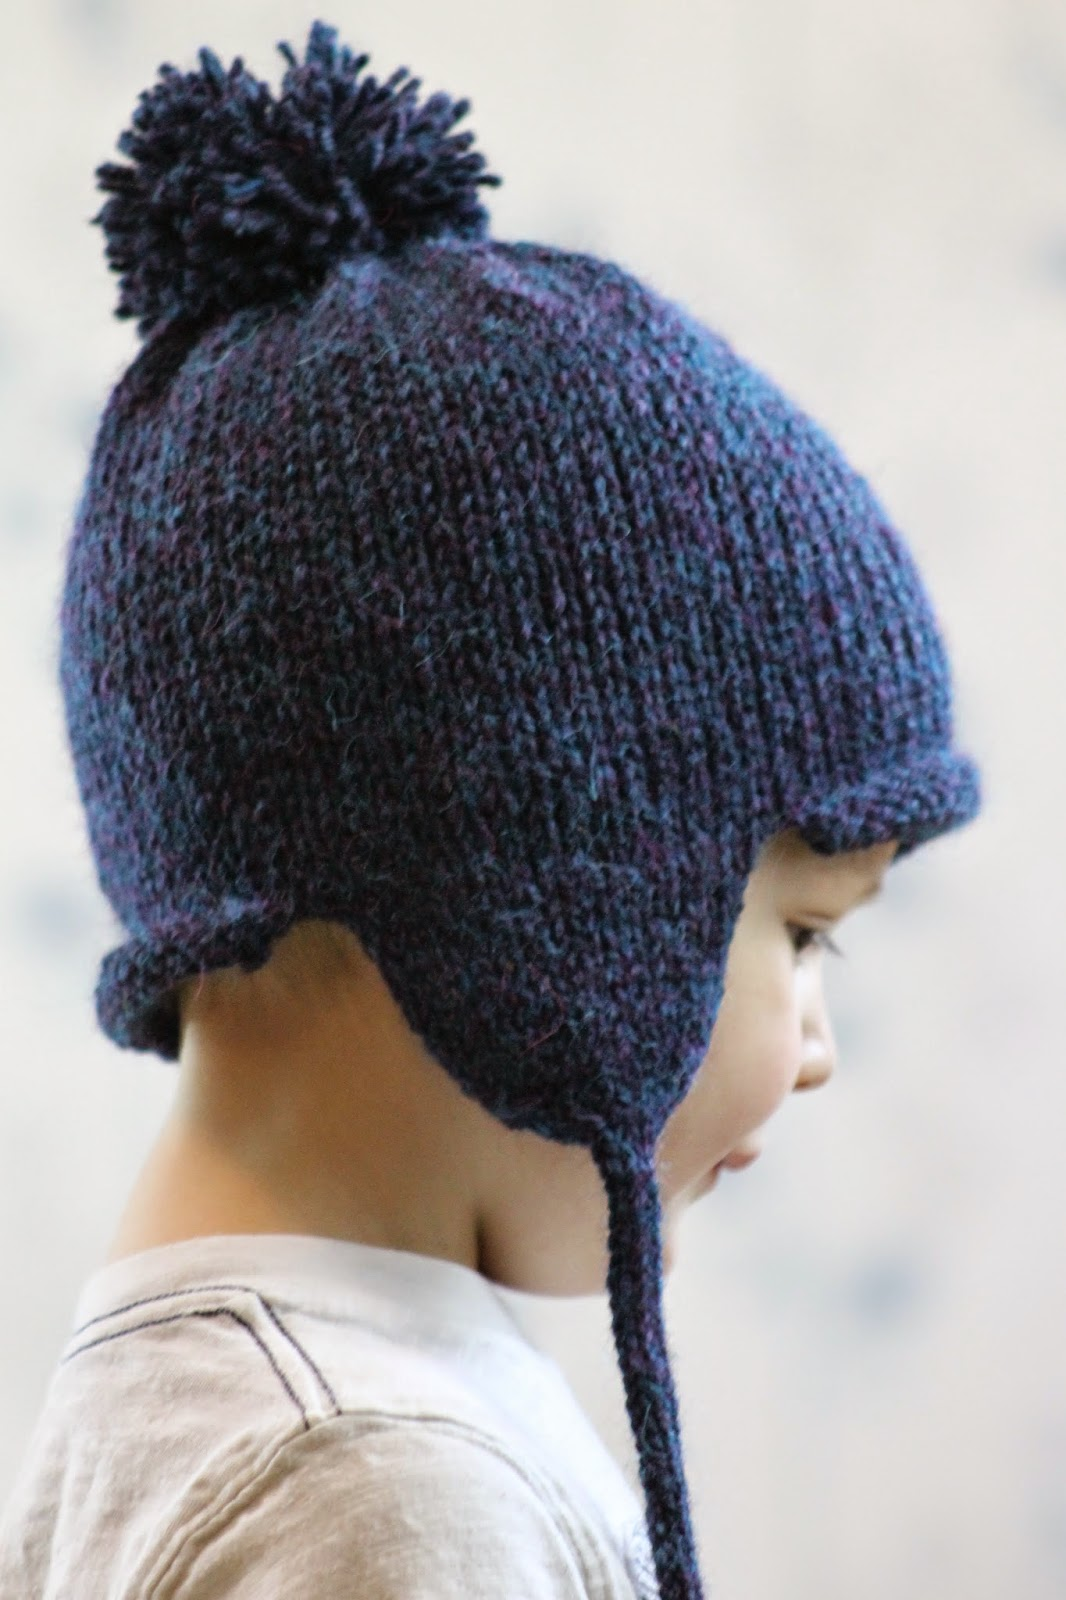 Free Knitting Patterns For Toddler Earflap Hats : Balls to the Walls Knits: All in the Family Earflap Hat